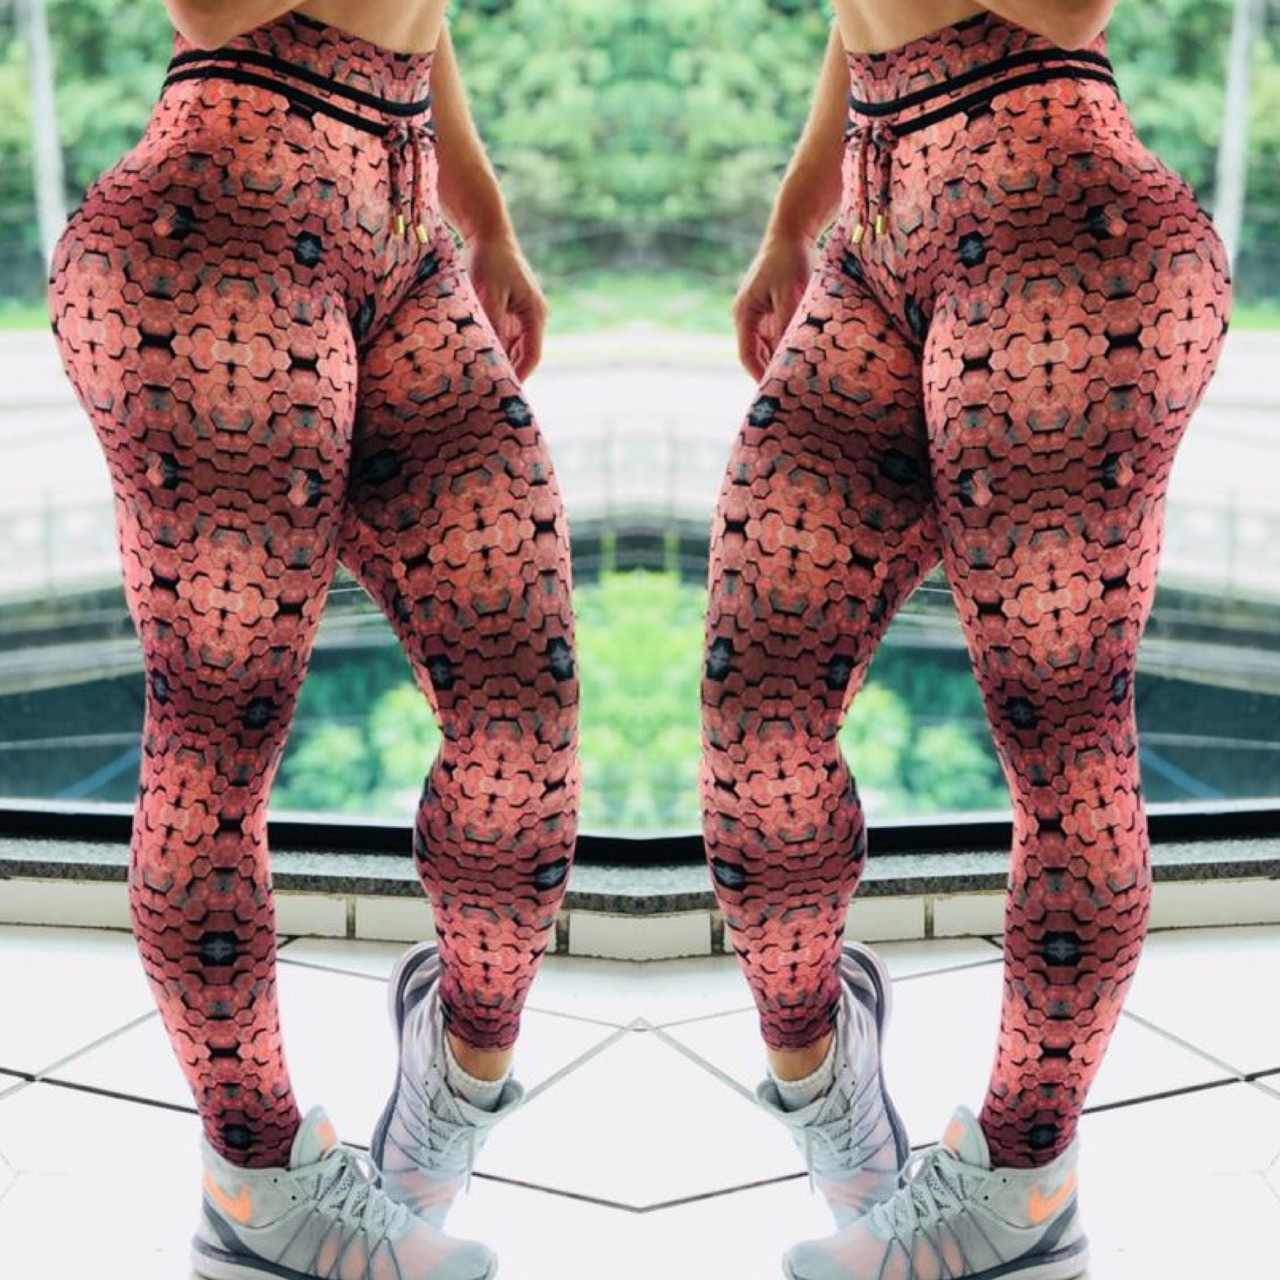 61aa8df5fdfb1 ... Leggings Femme Fitness Push Up 3D Printed Leggings Women High Waist  Workout Legging Pants Fashion Female ...